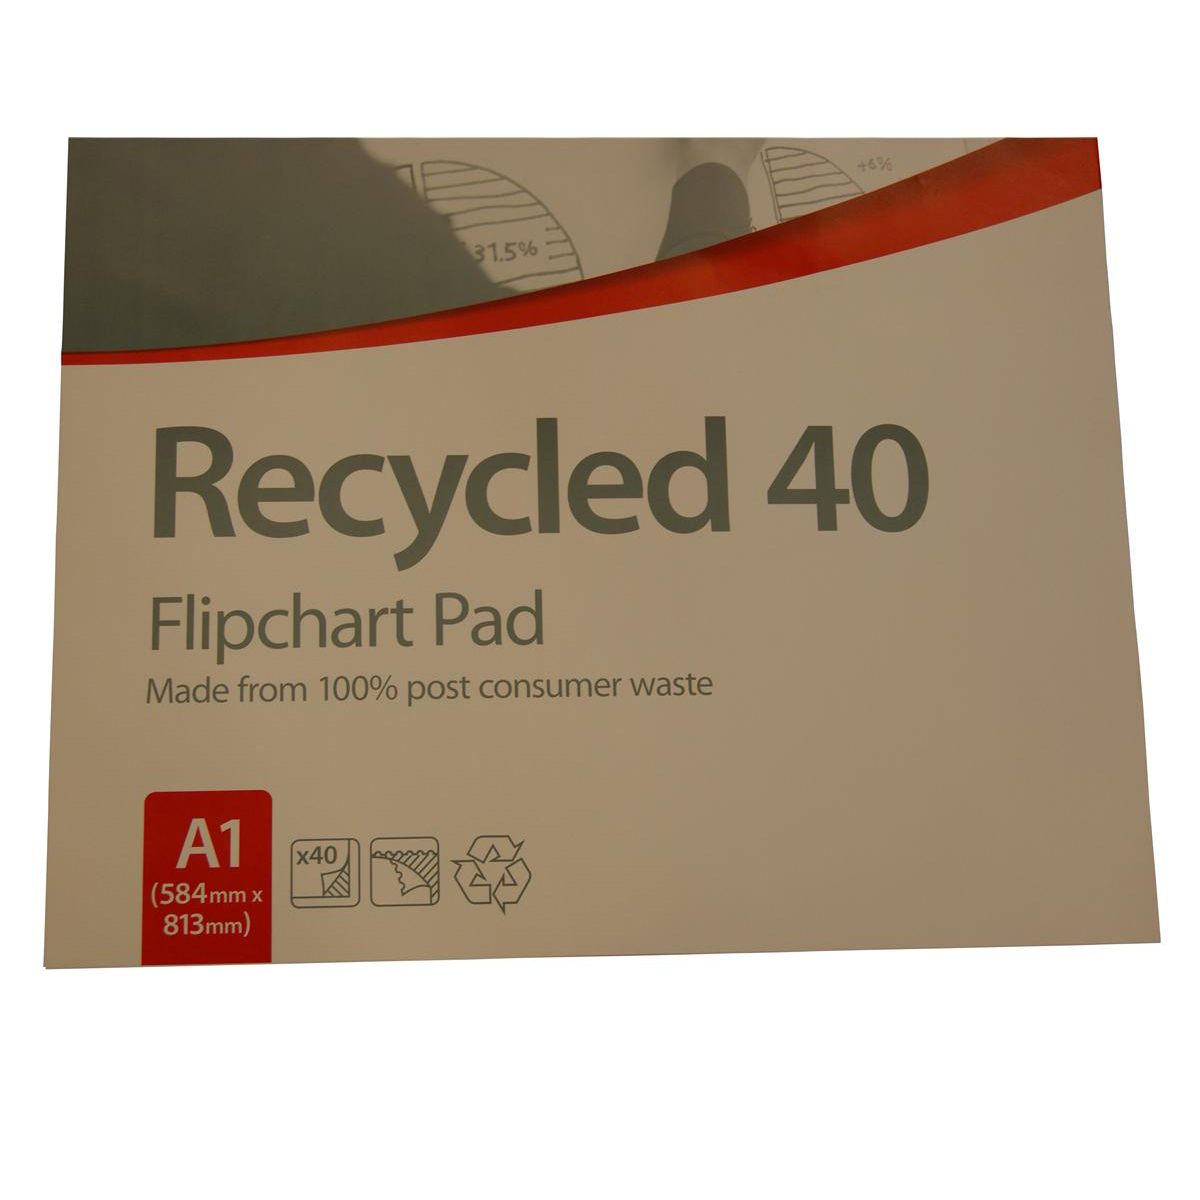 Nobo Recycled Flipchart Pad Perforated 40 Sheets 70gsm A1 Plain Ref 34631178 Pack 5